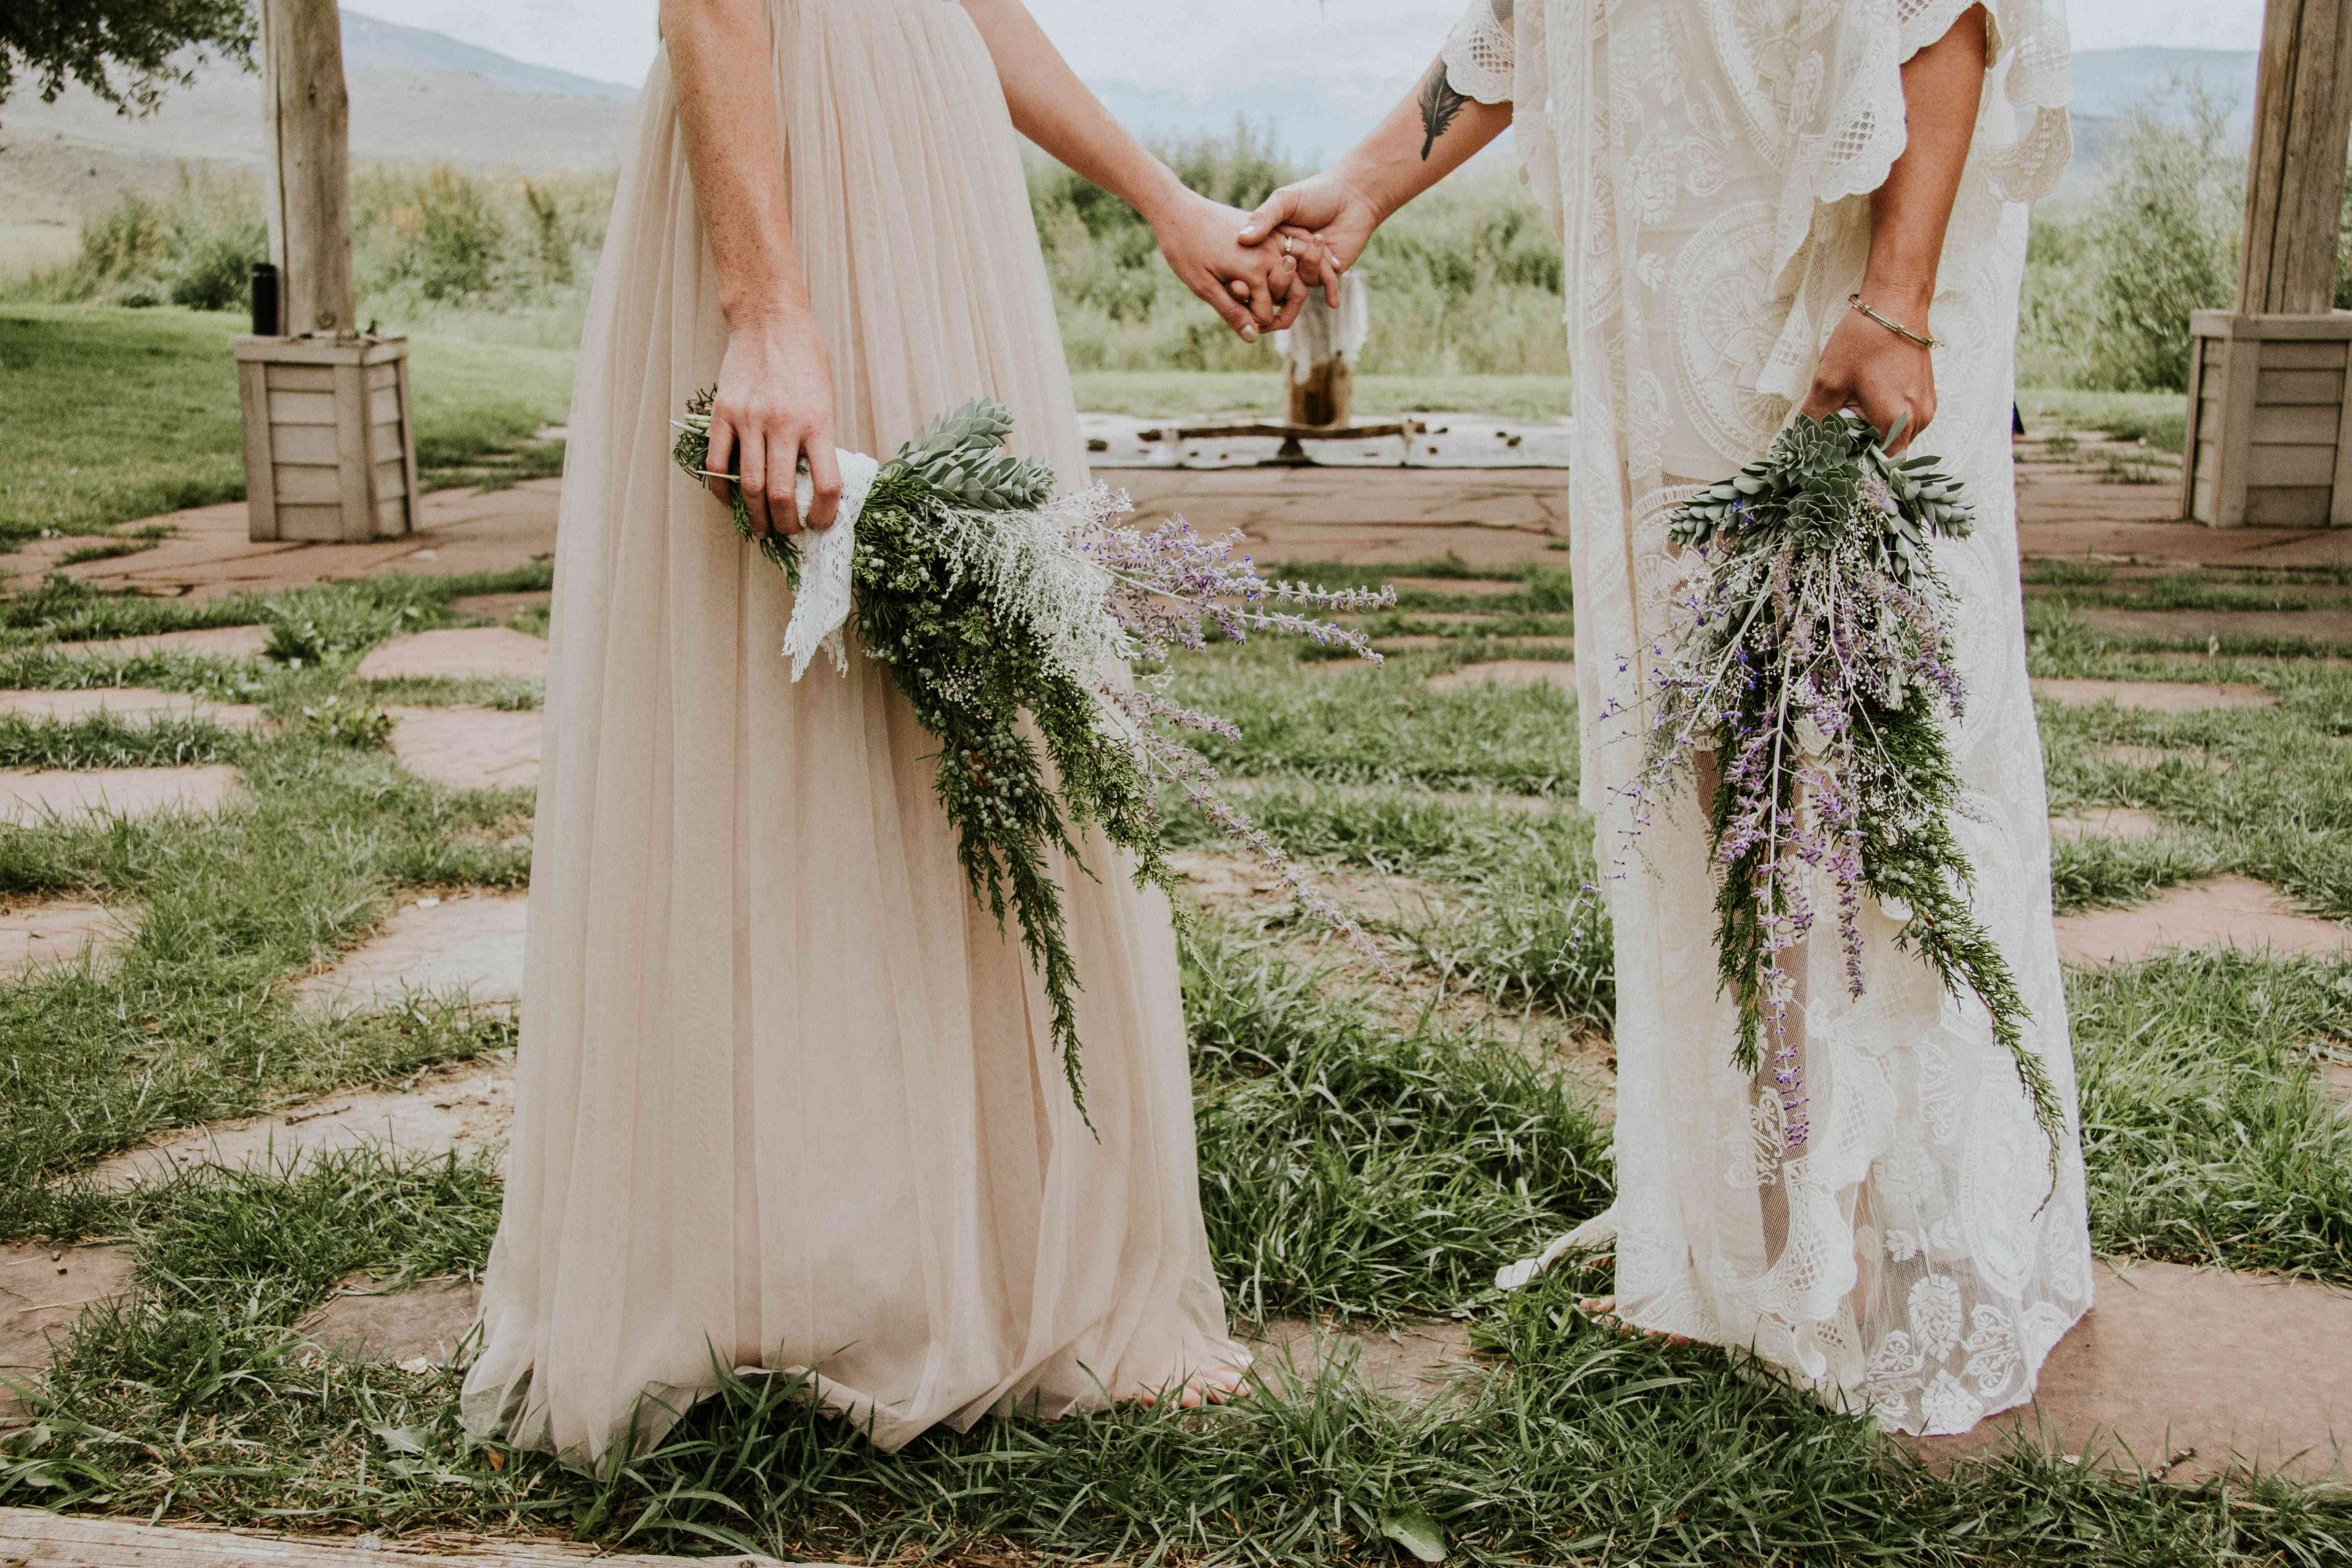 Brides holding hands and bouquets